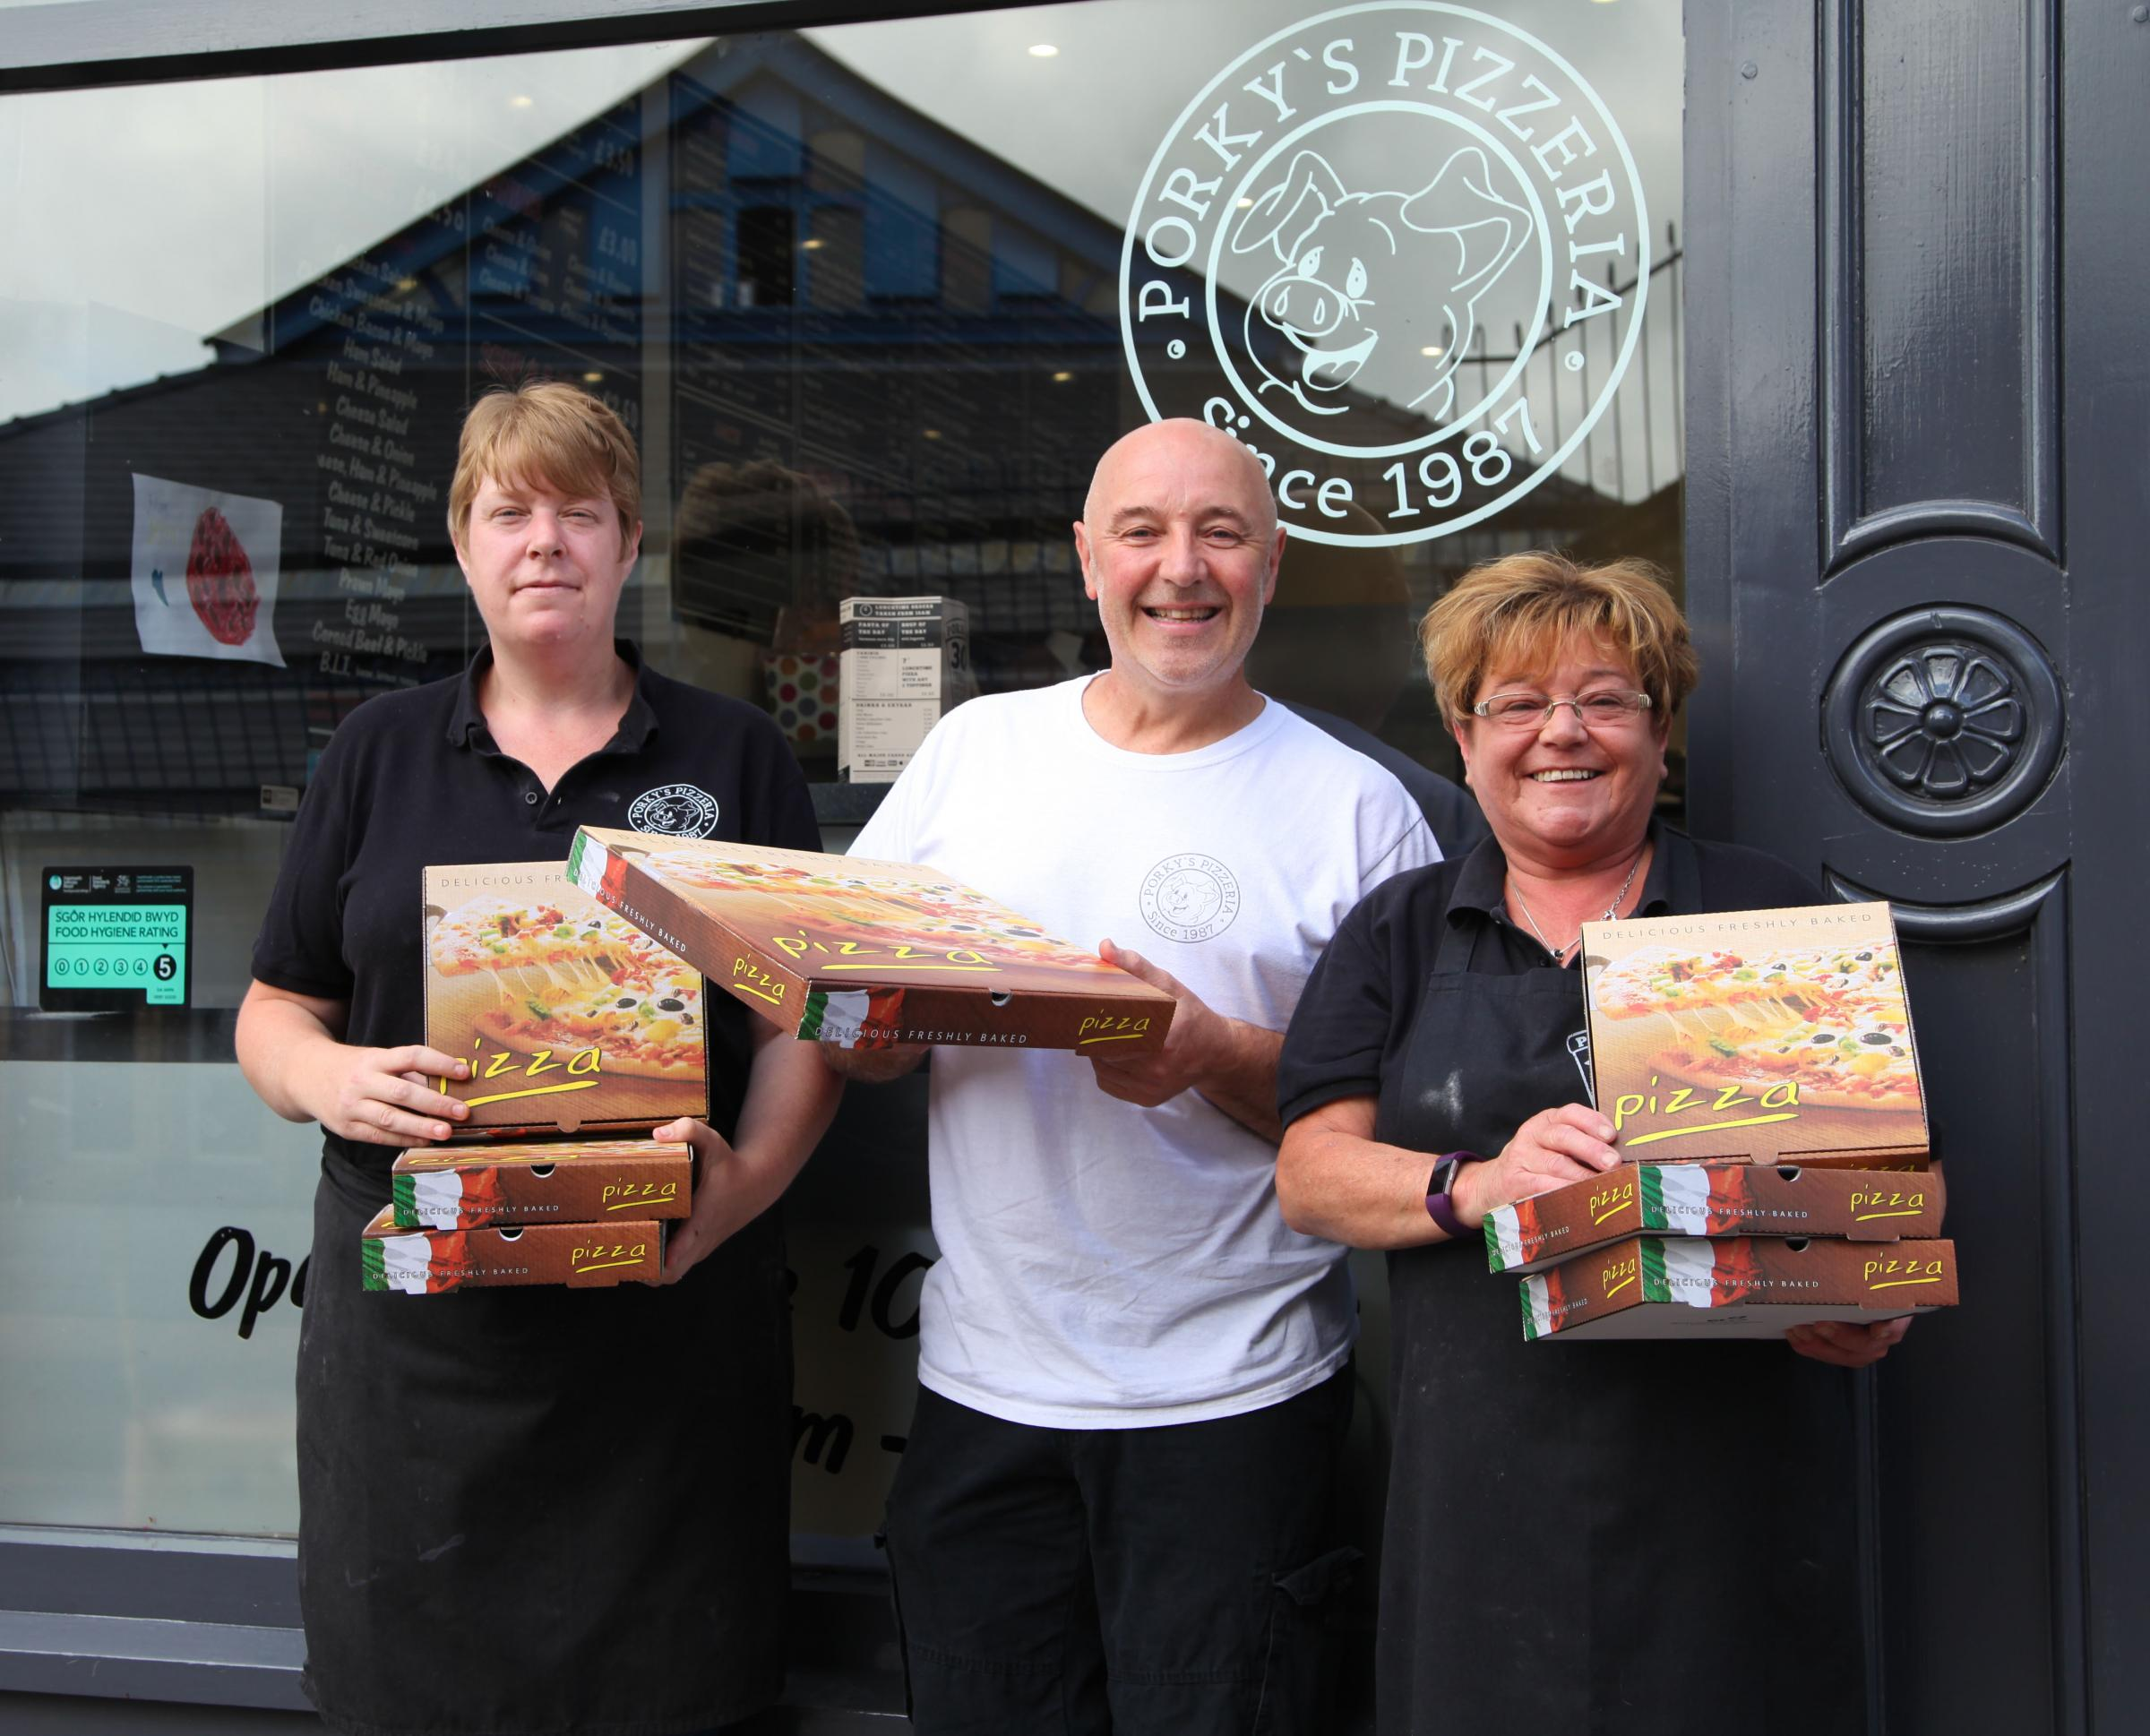 HAPPY: Kerry Dunford, Mike Daley, Sian Jones celebrating a pizzeria's anniversary